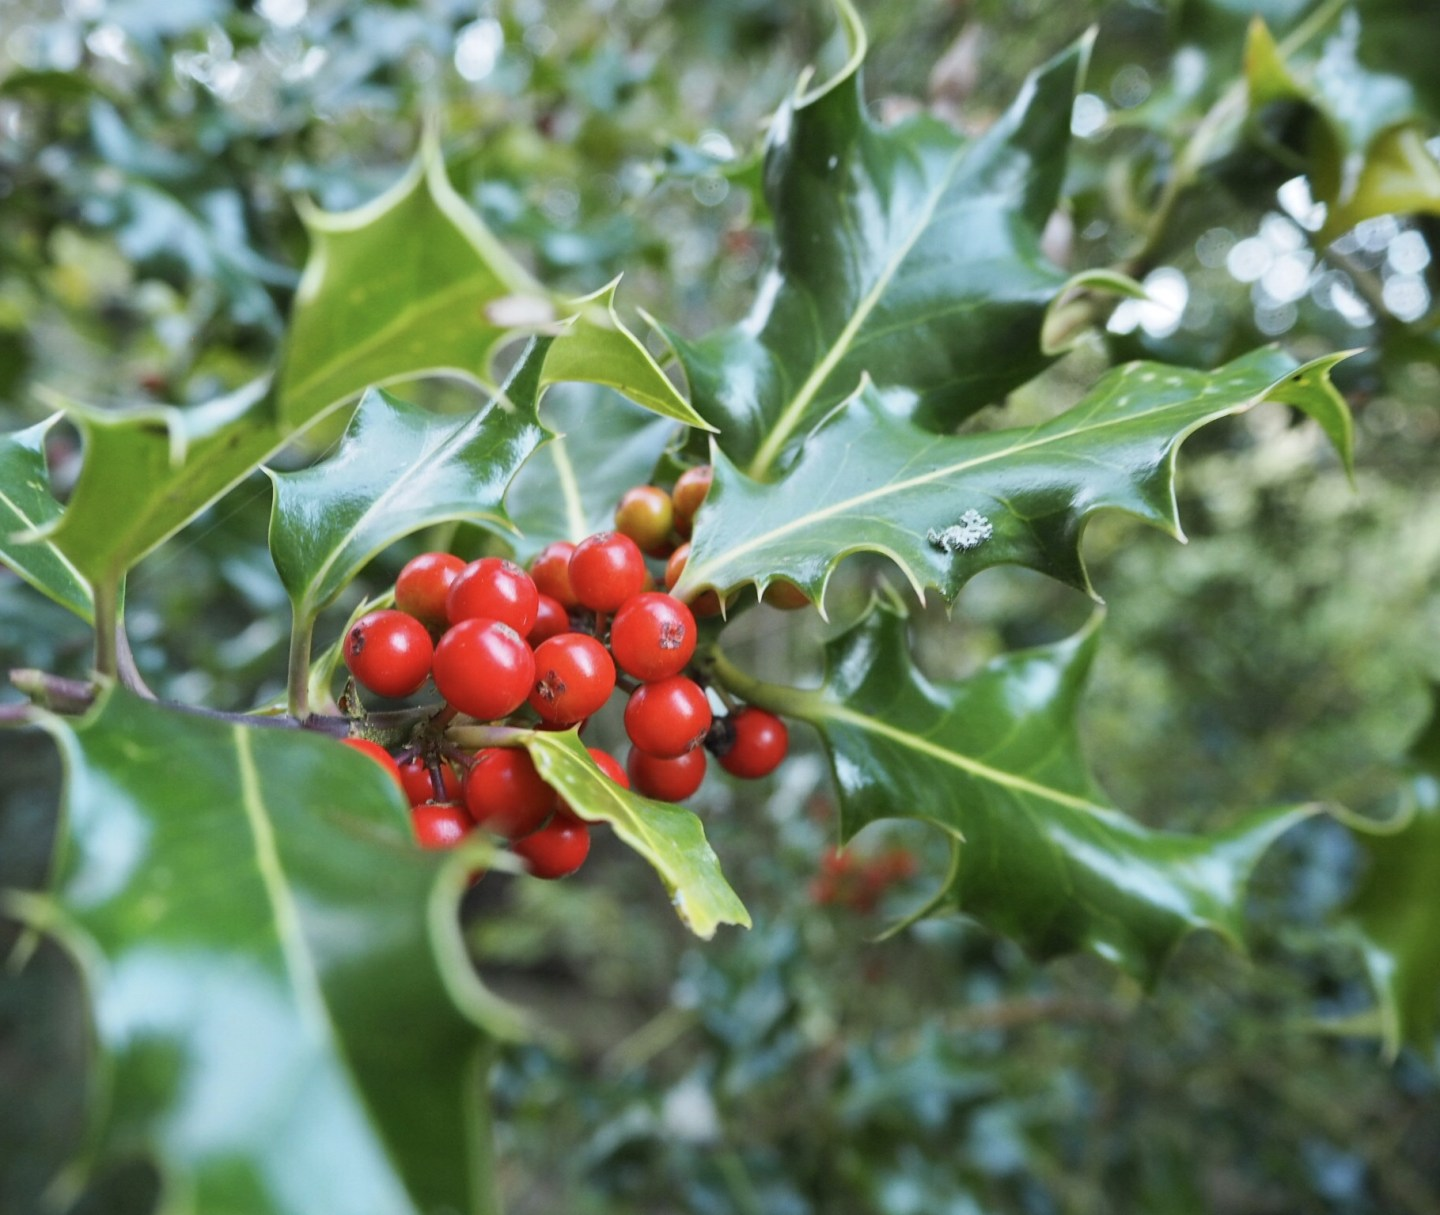 Holly berries. The wonder of autumn.